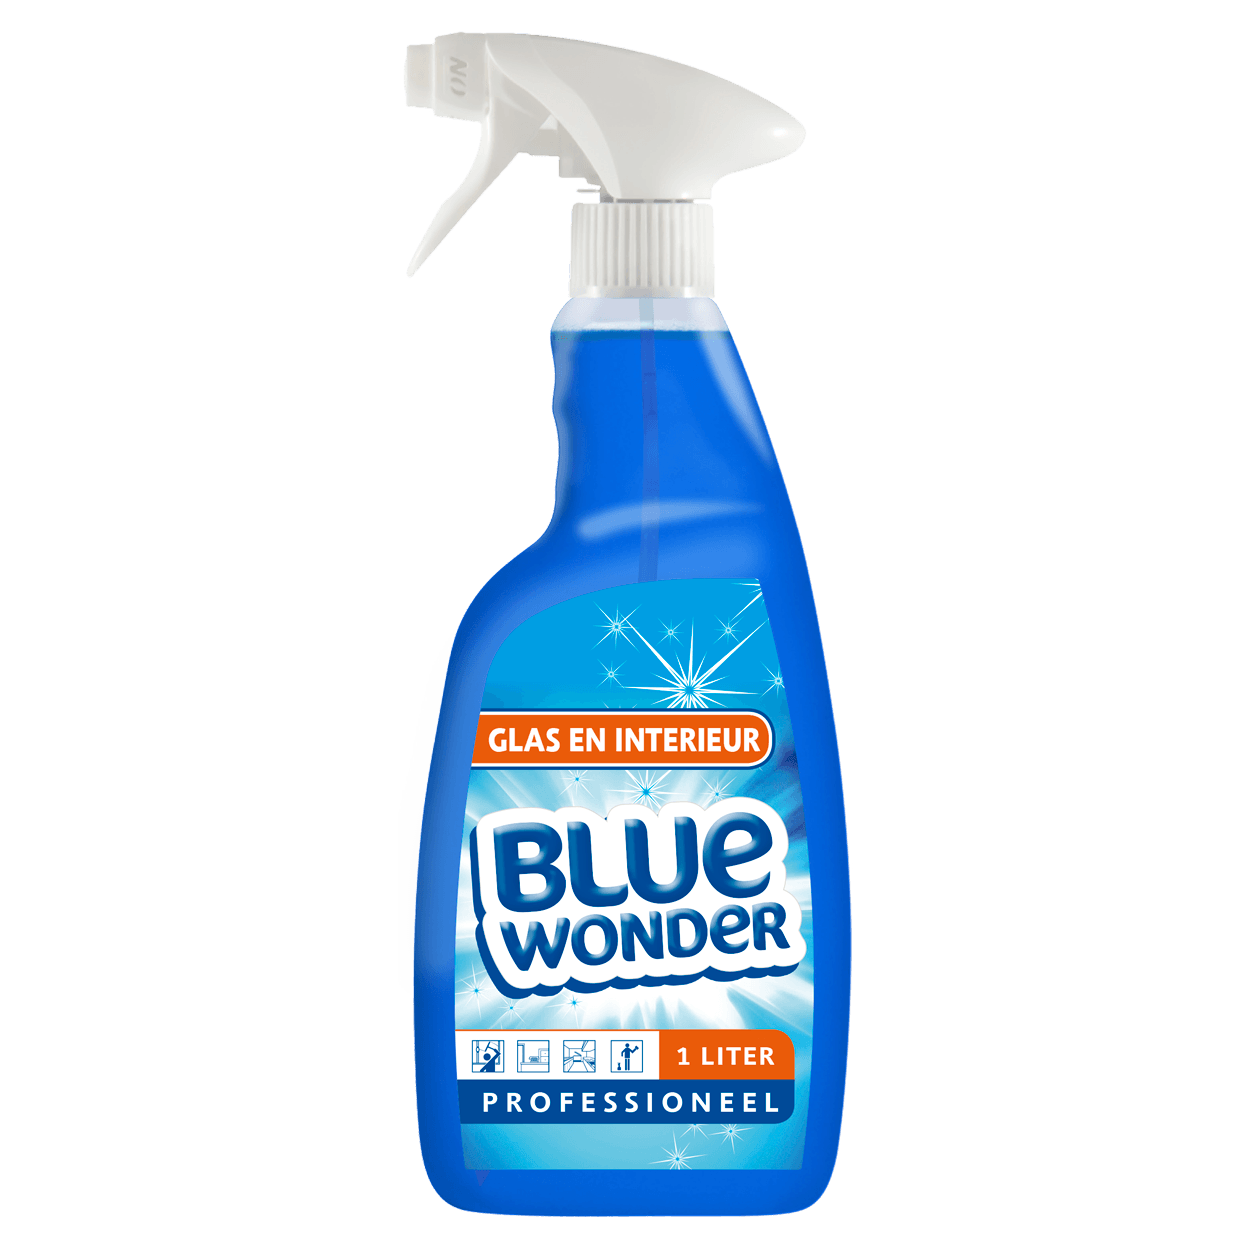 8712038000861_Blue-Wonder_Glas-en-interieur-Professioneel-spray_front